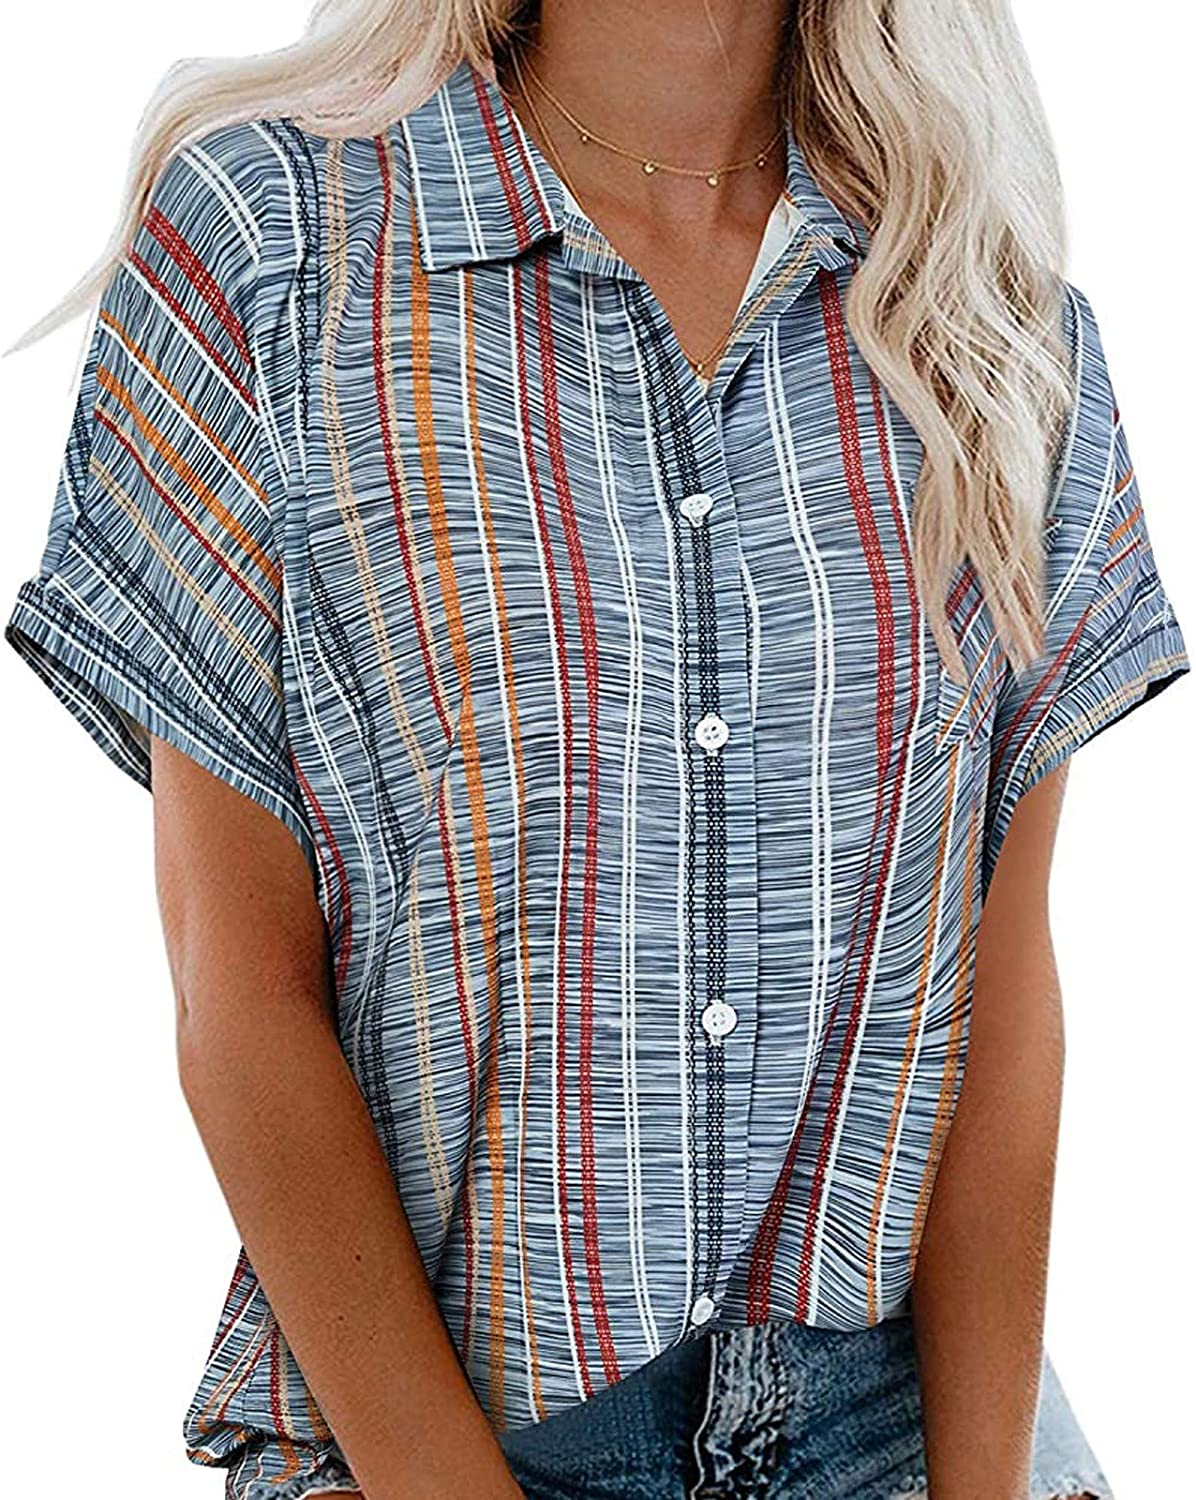 Tshirts for Womens Short Sleeve Collared V B Shirts Neck Discount mail order New sales